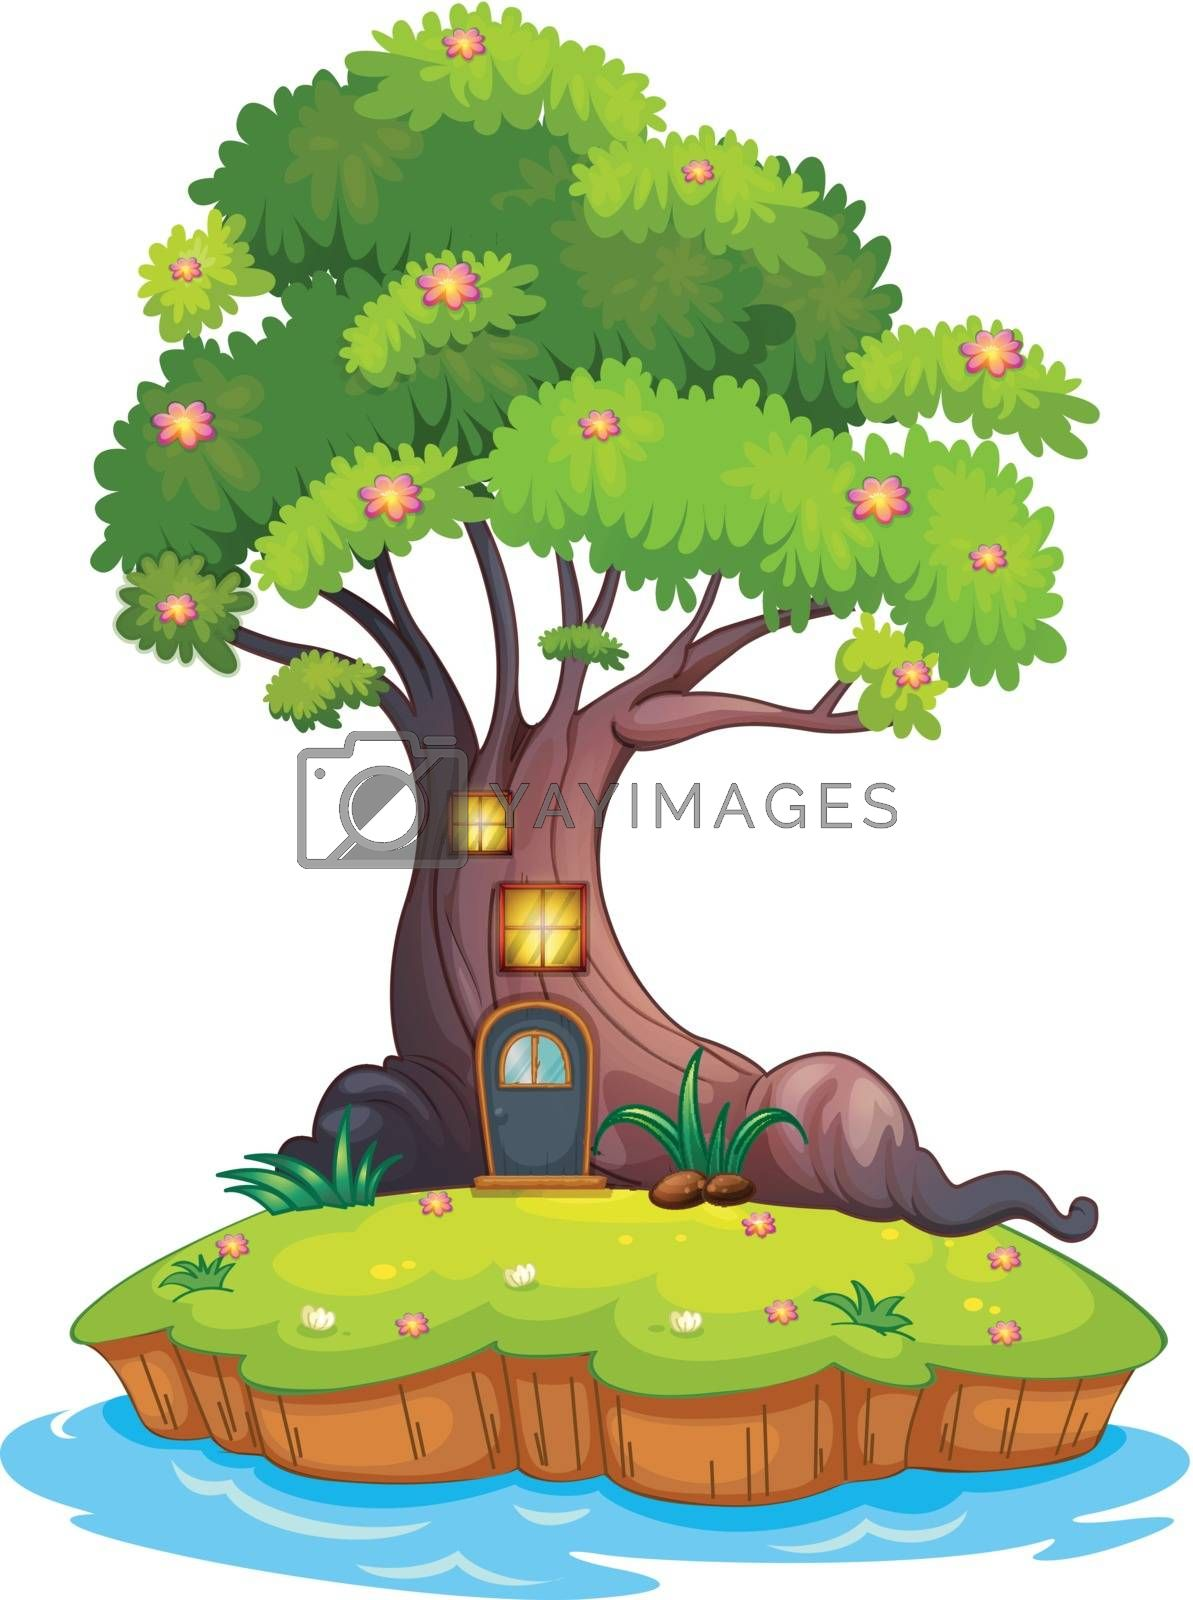 Illustration of a giant tree in an island on a white background